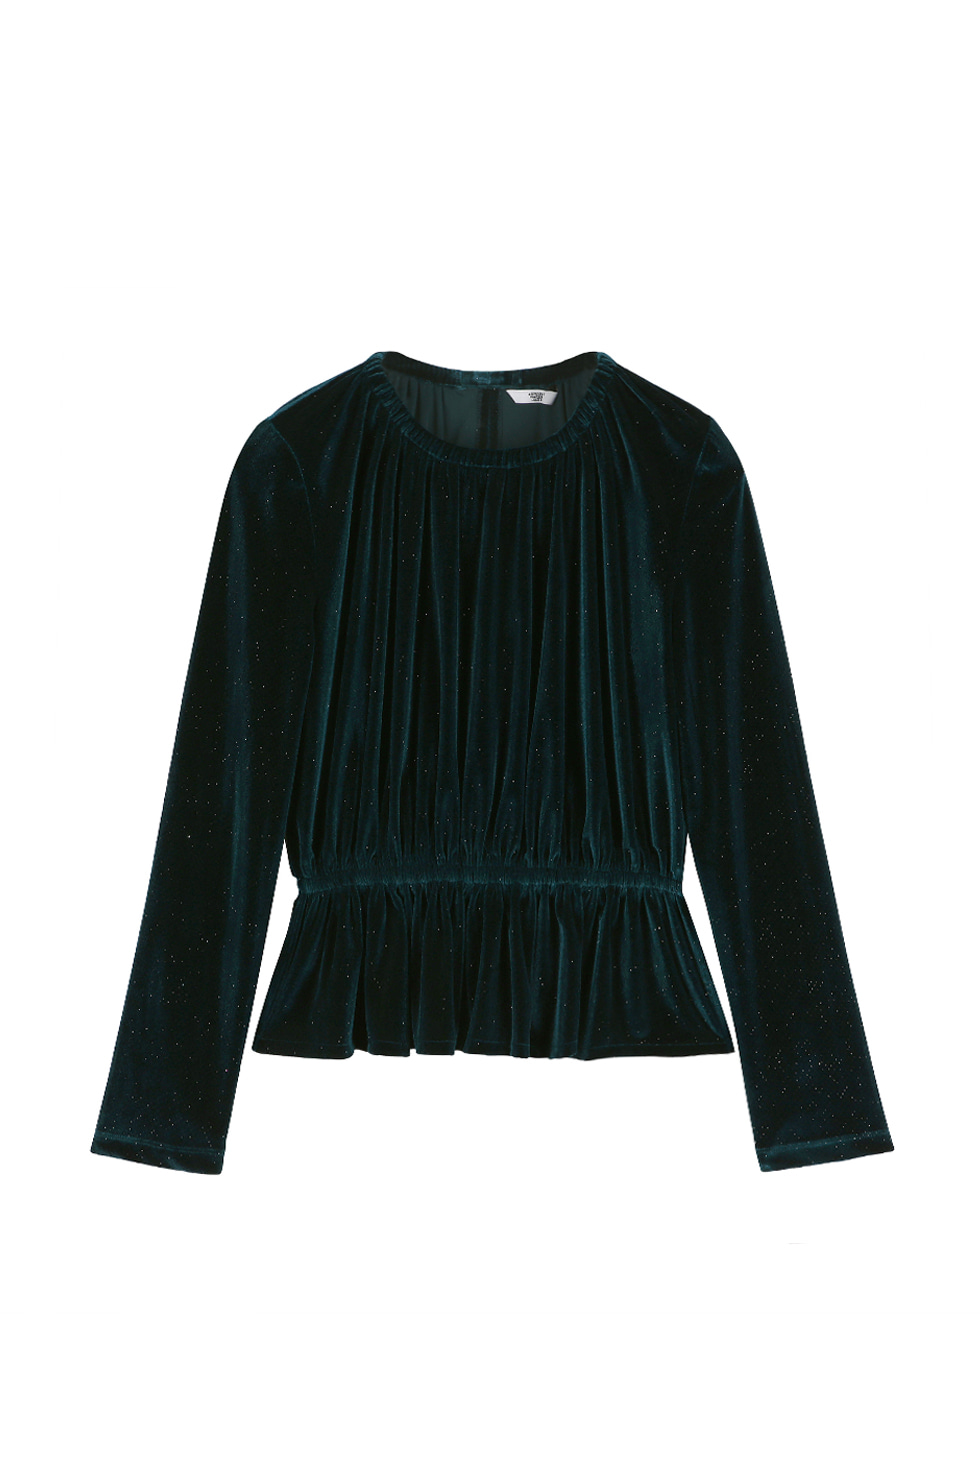 GLITTERED VELVET TOP -GREEN